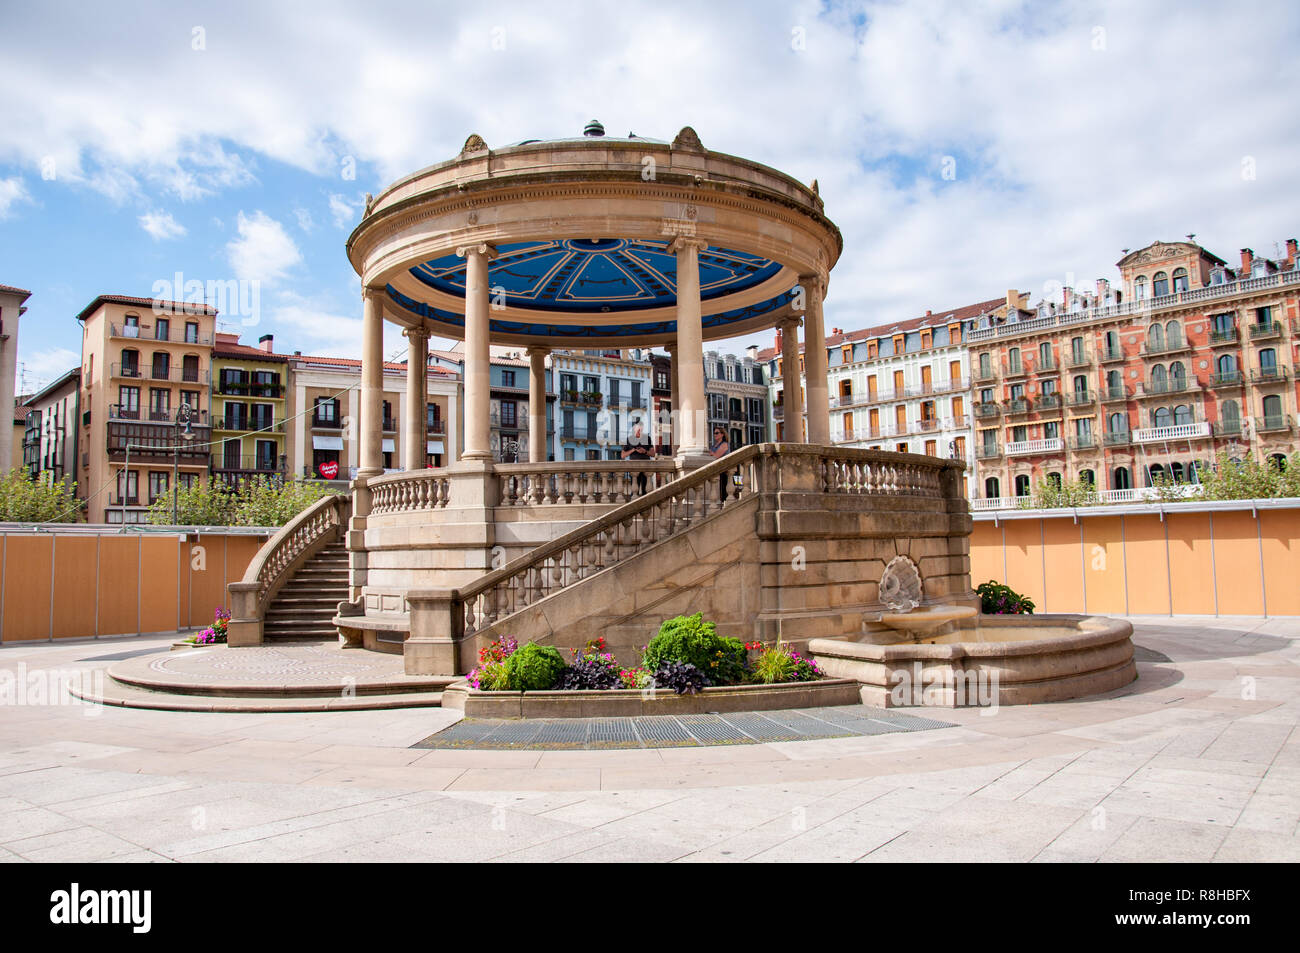 The bandstand in the centre of Plaza del Costillo, Pamplona, Spain - Stock Image